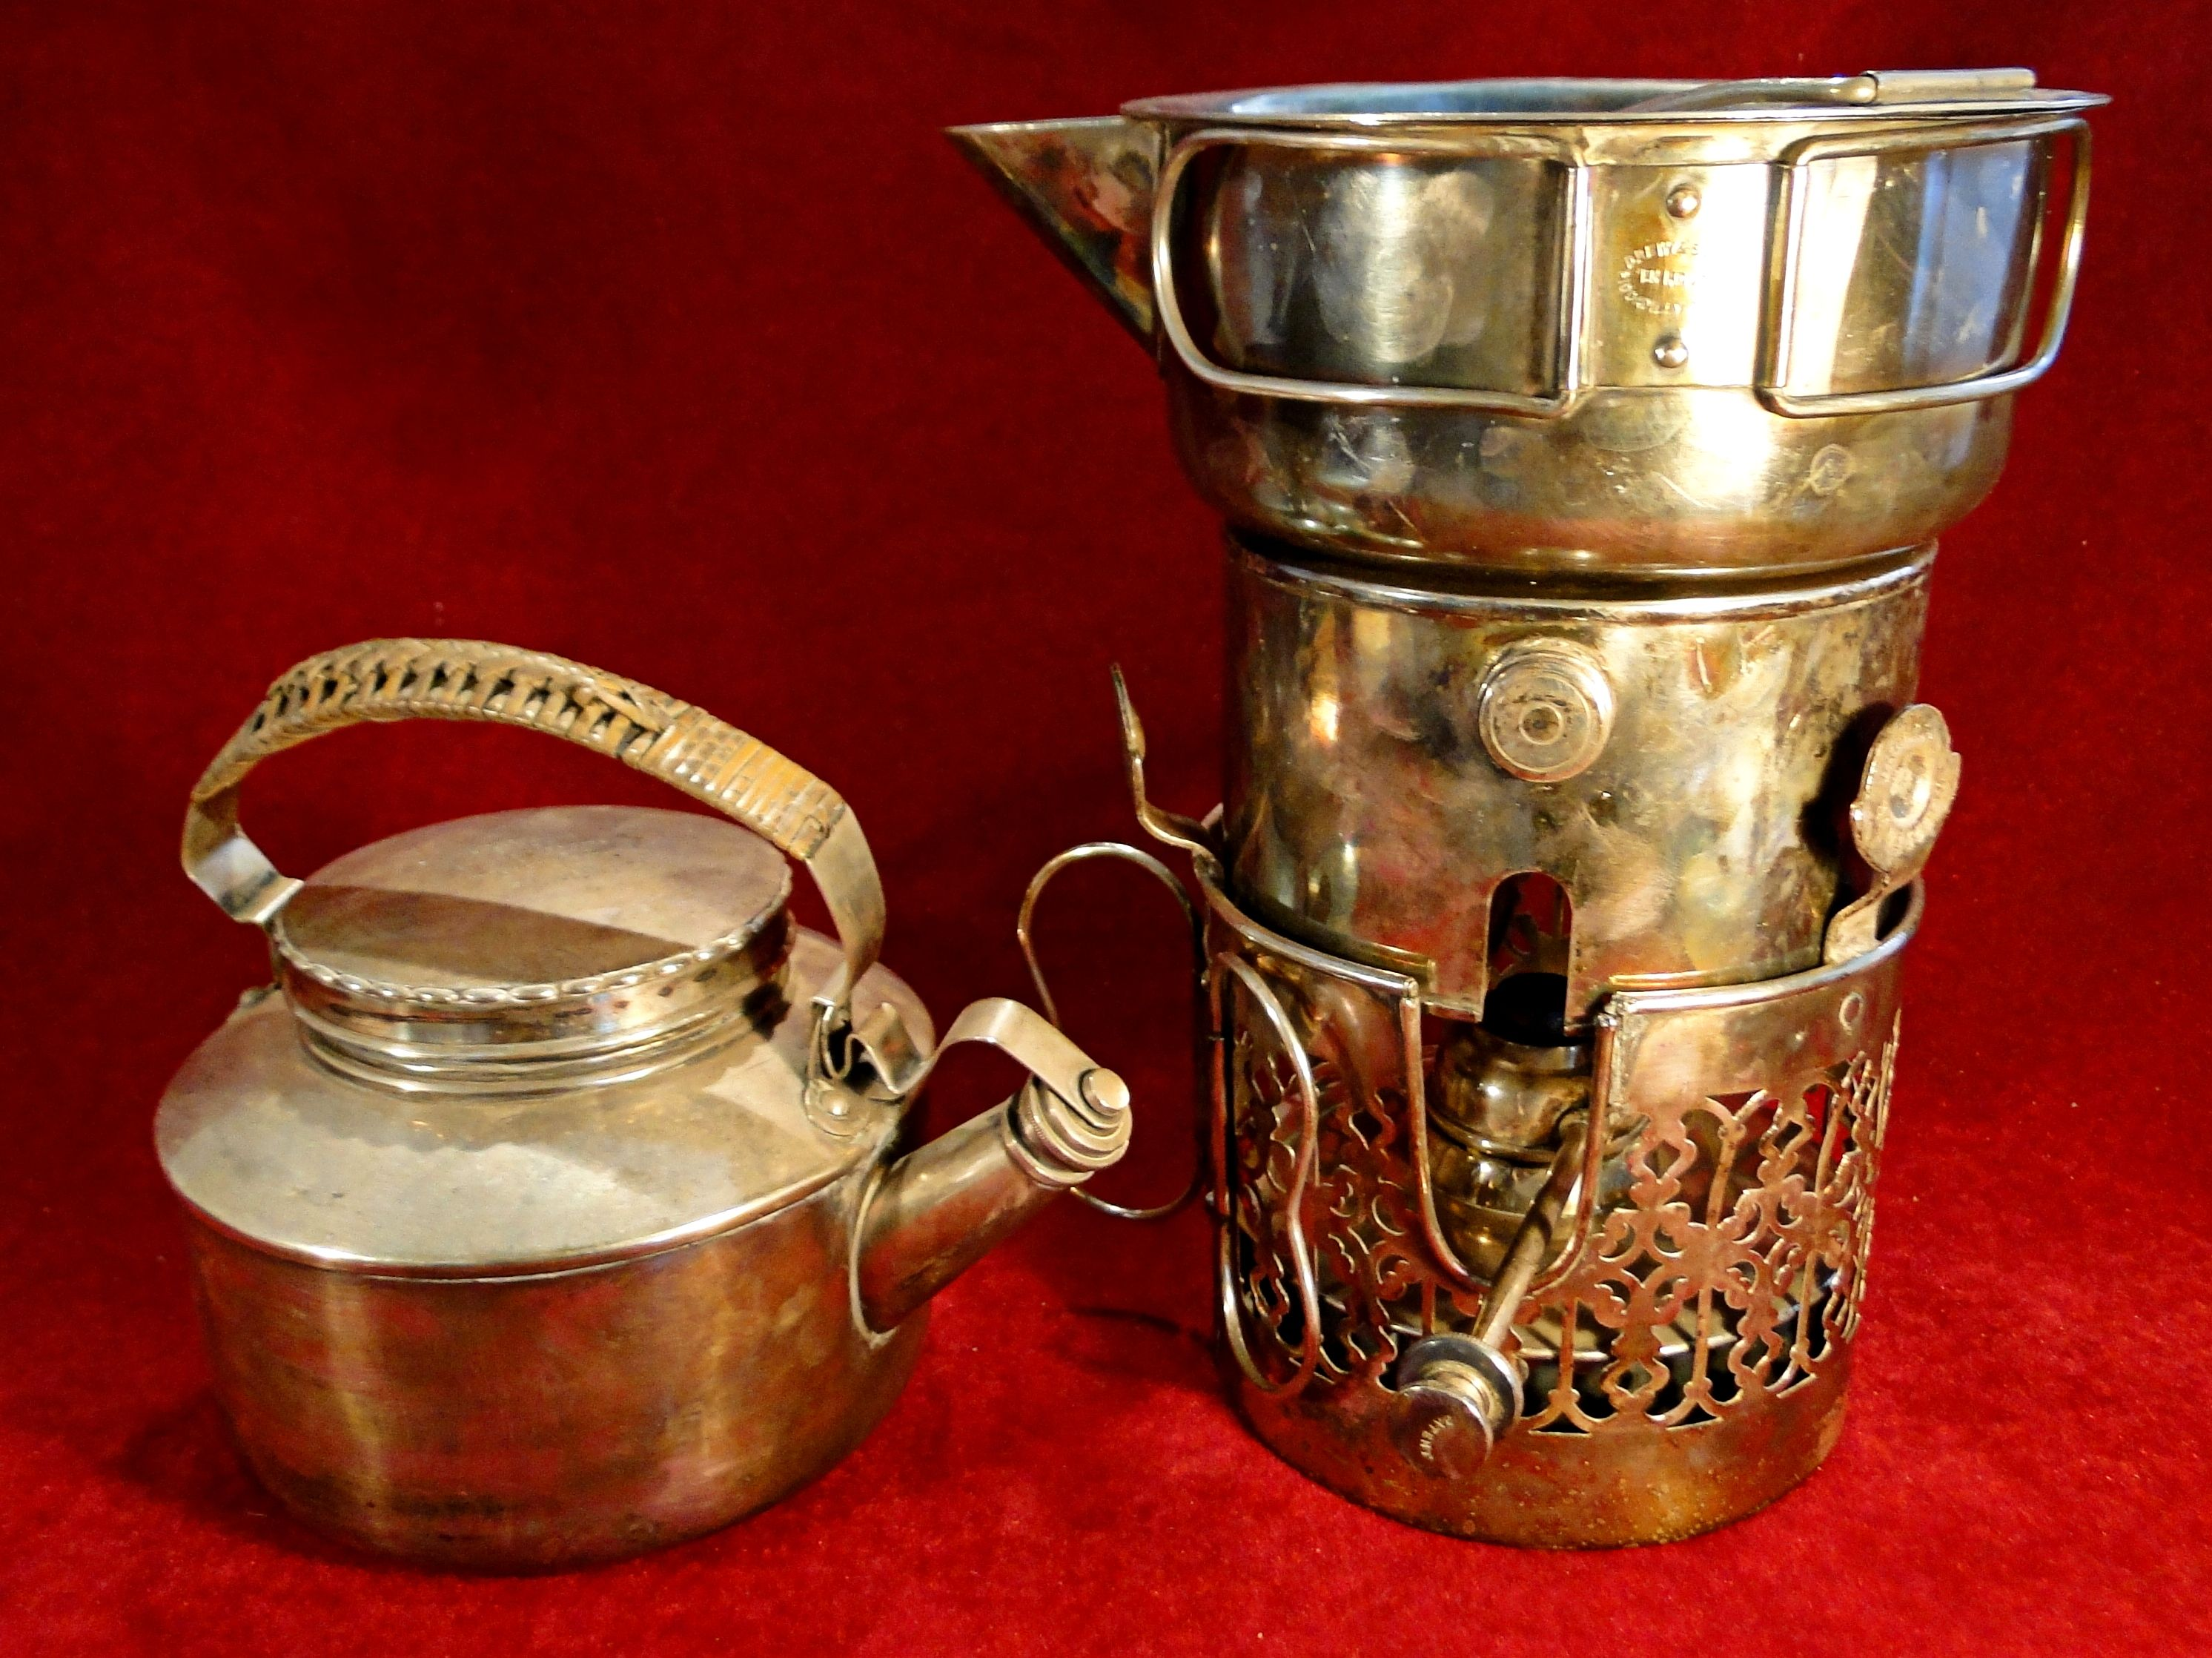 87 A Late 19thc En Route Silver Plated Travelling Cooking Stove By Drew Sons London Comprising A Spirit Burner Pierced Braz Cooking Stove Kettle Stove